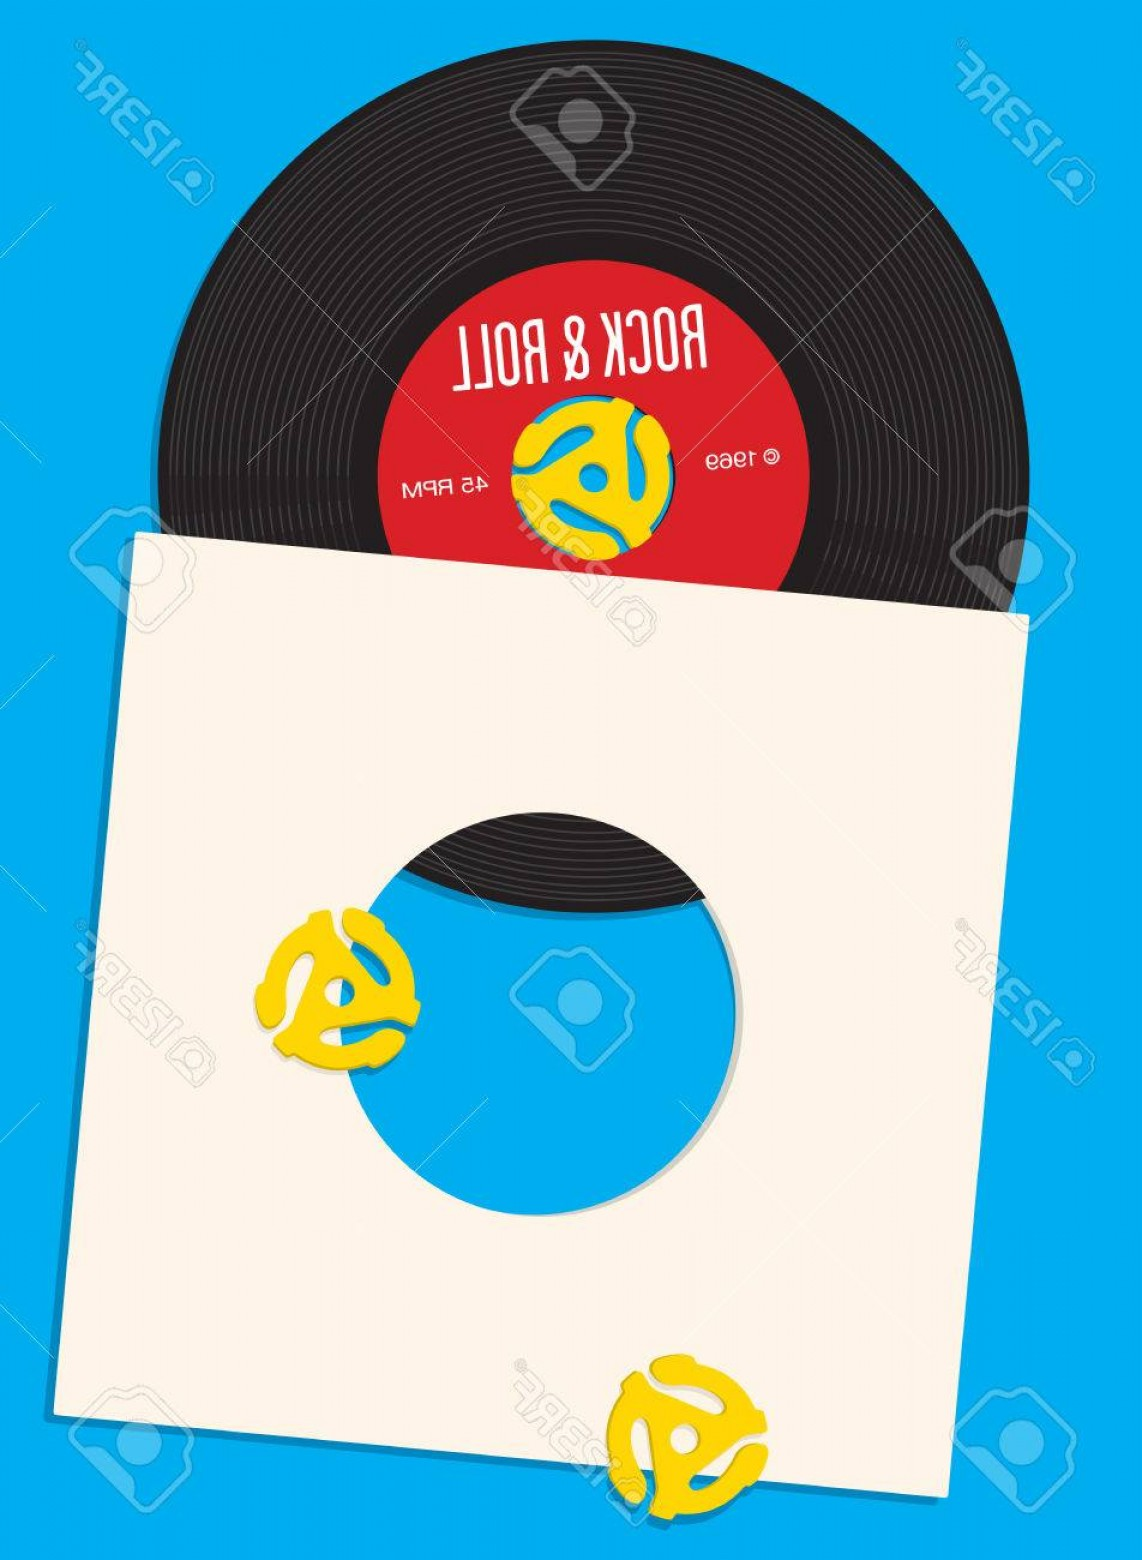 Vinyl Roll Vector: Photostock Vector Vinyl Record Design Template Design Featuring Illustration Of Rpm Single Record With Record Inser